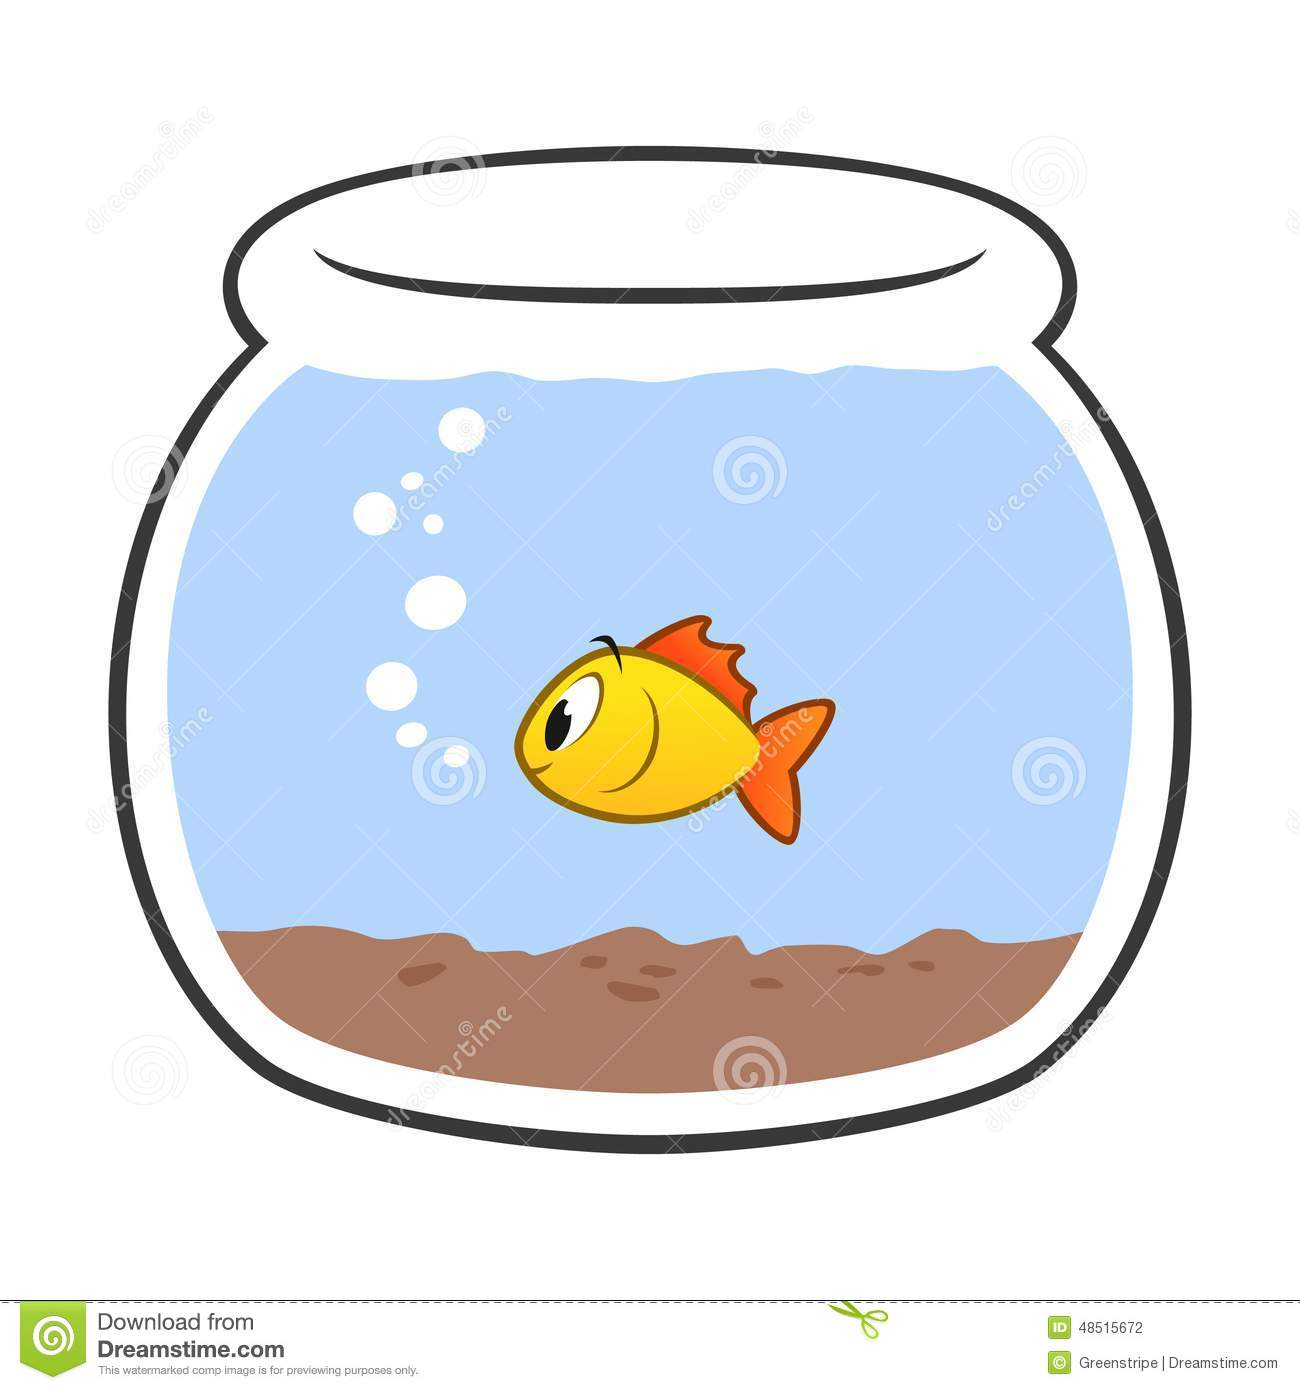 Cartoon fish bowl stock vector illustration of preschool for Easiest fish to care for in a bowl